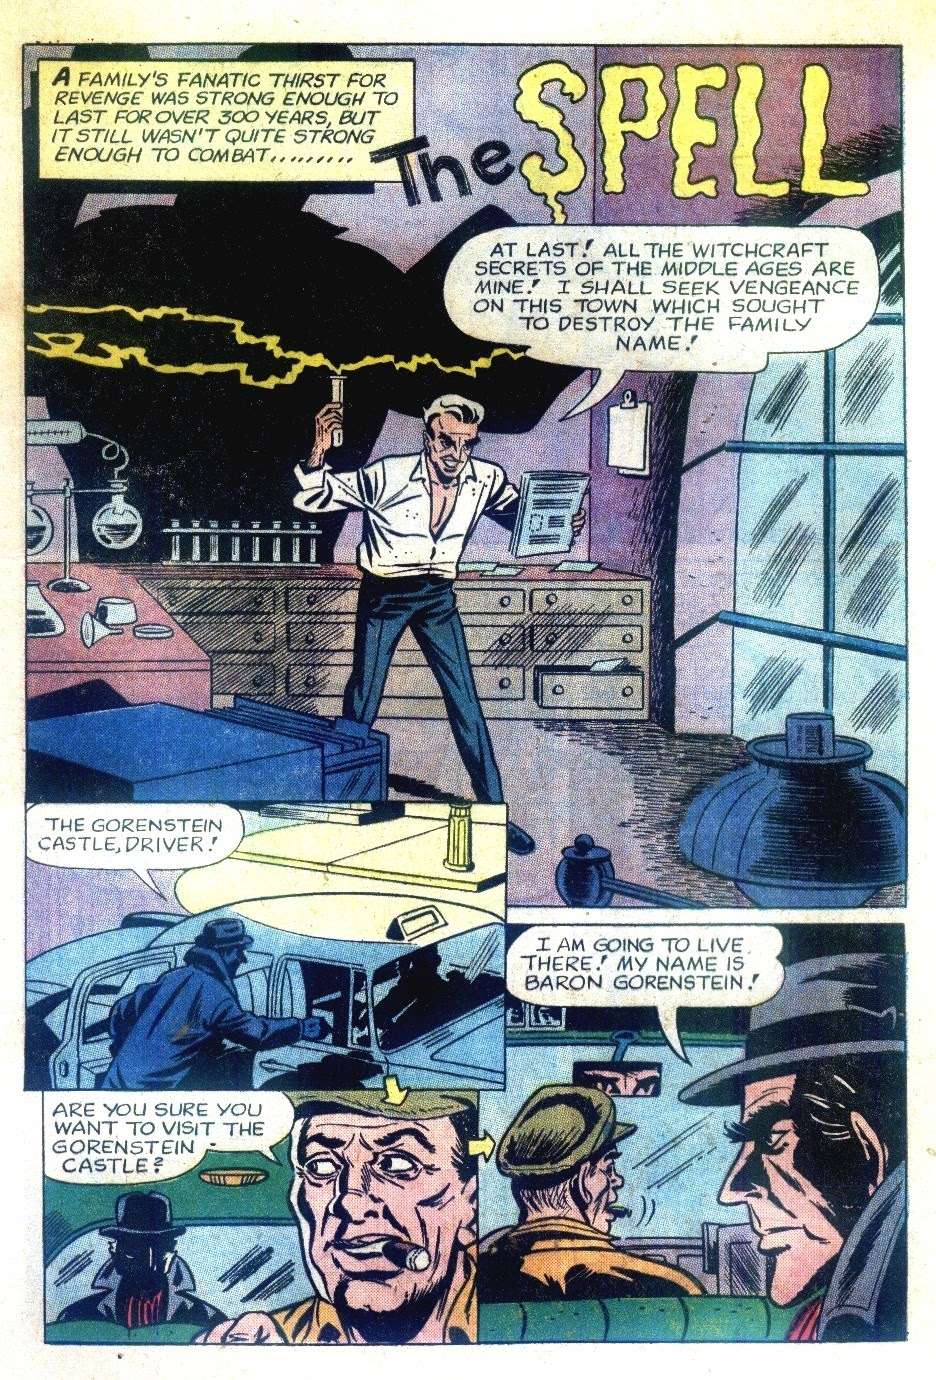 Read online Tales Calculated to Drive You Bats comic -  Issue #7 - 13